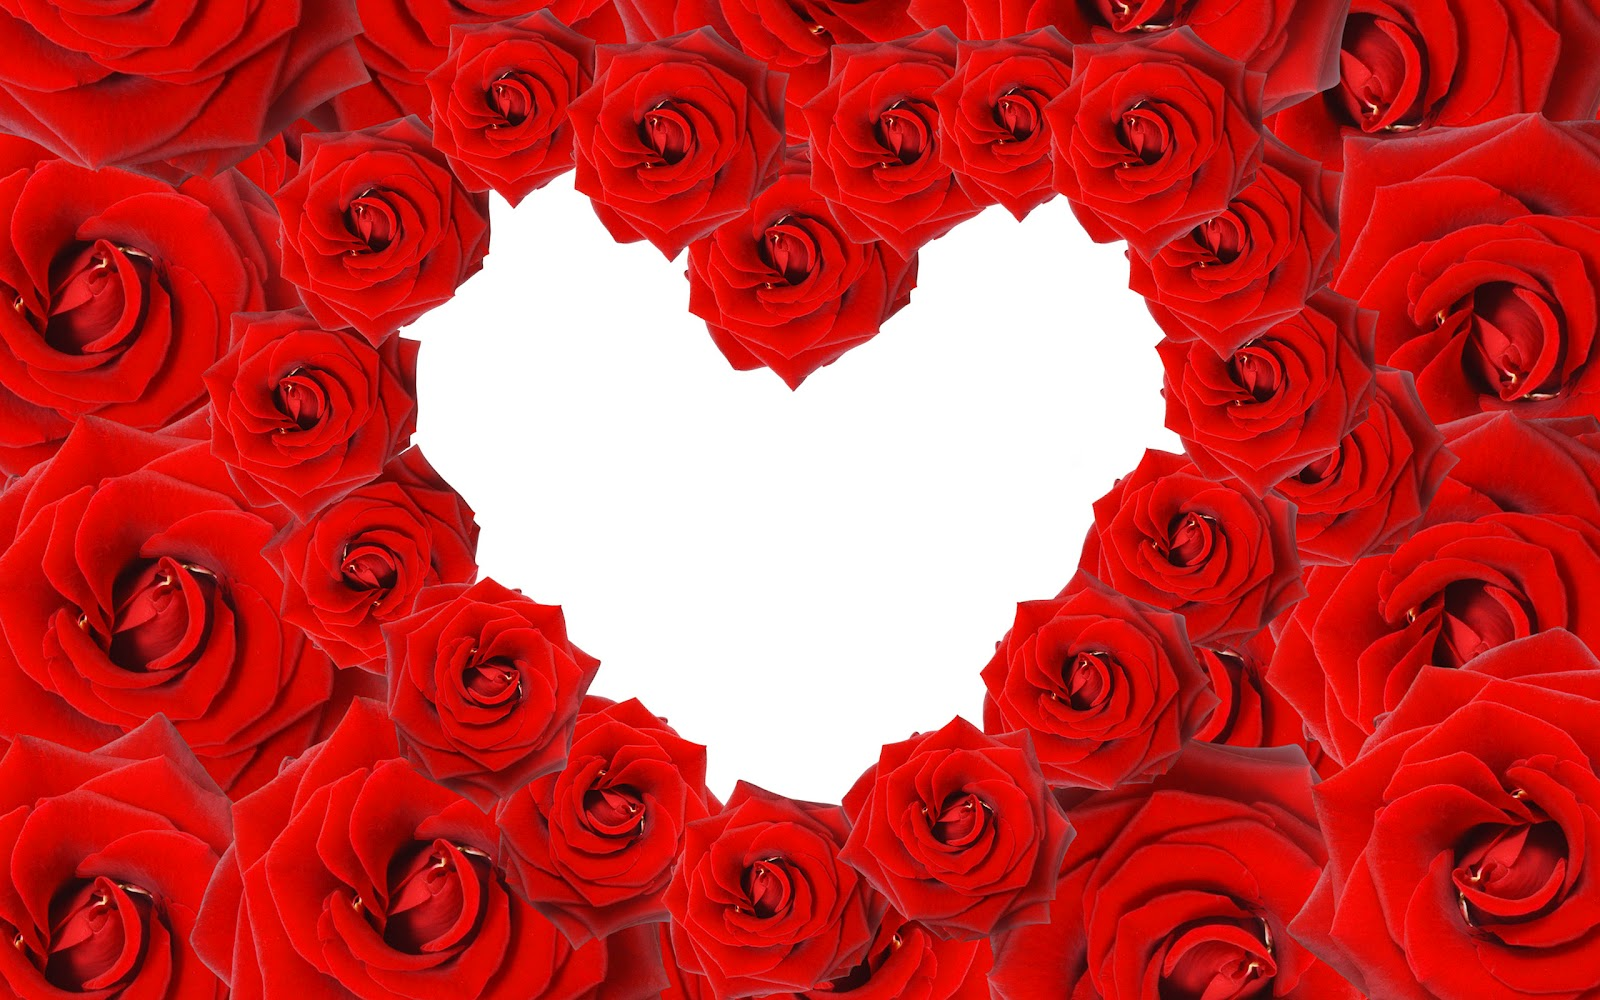 Hd red rose wallpaper free red roses hd wallpapers - Beautiful red roses wallpapers desktop ...